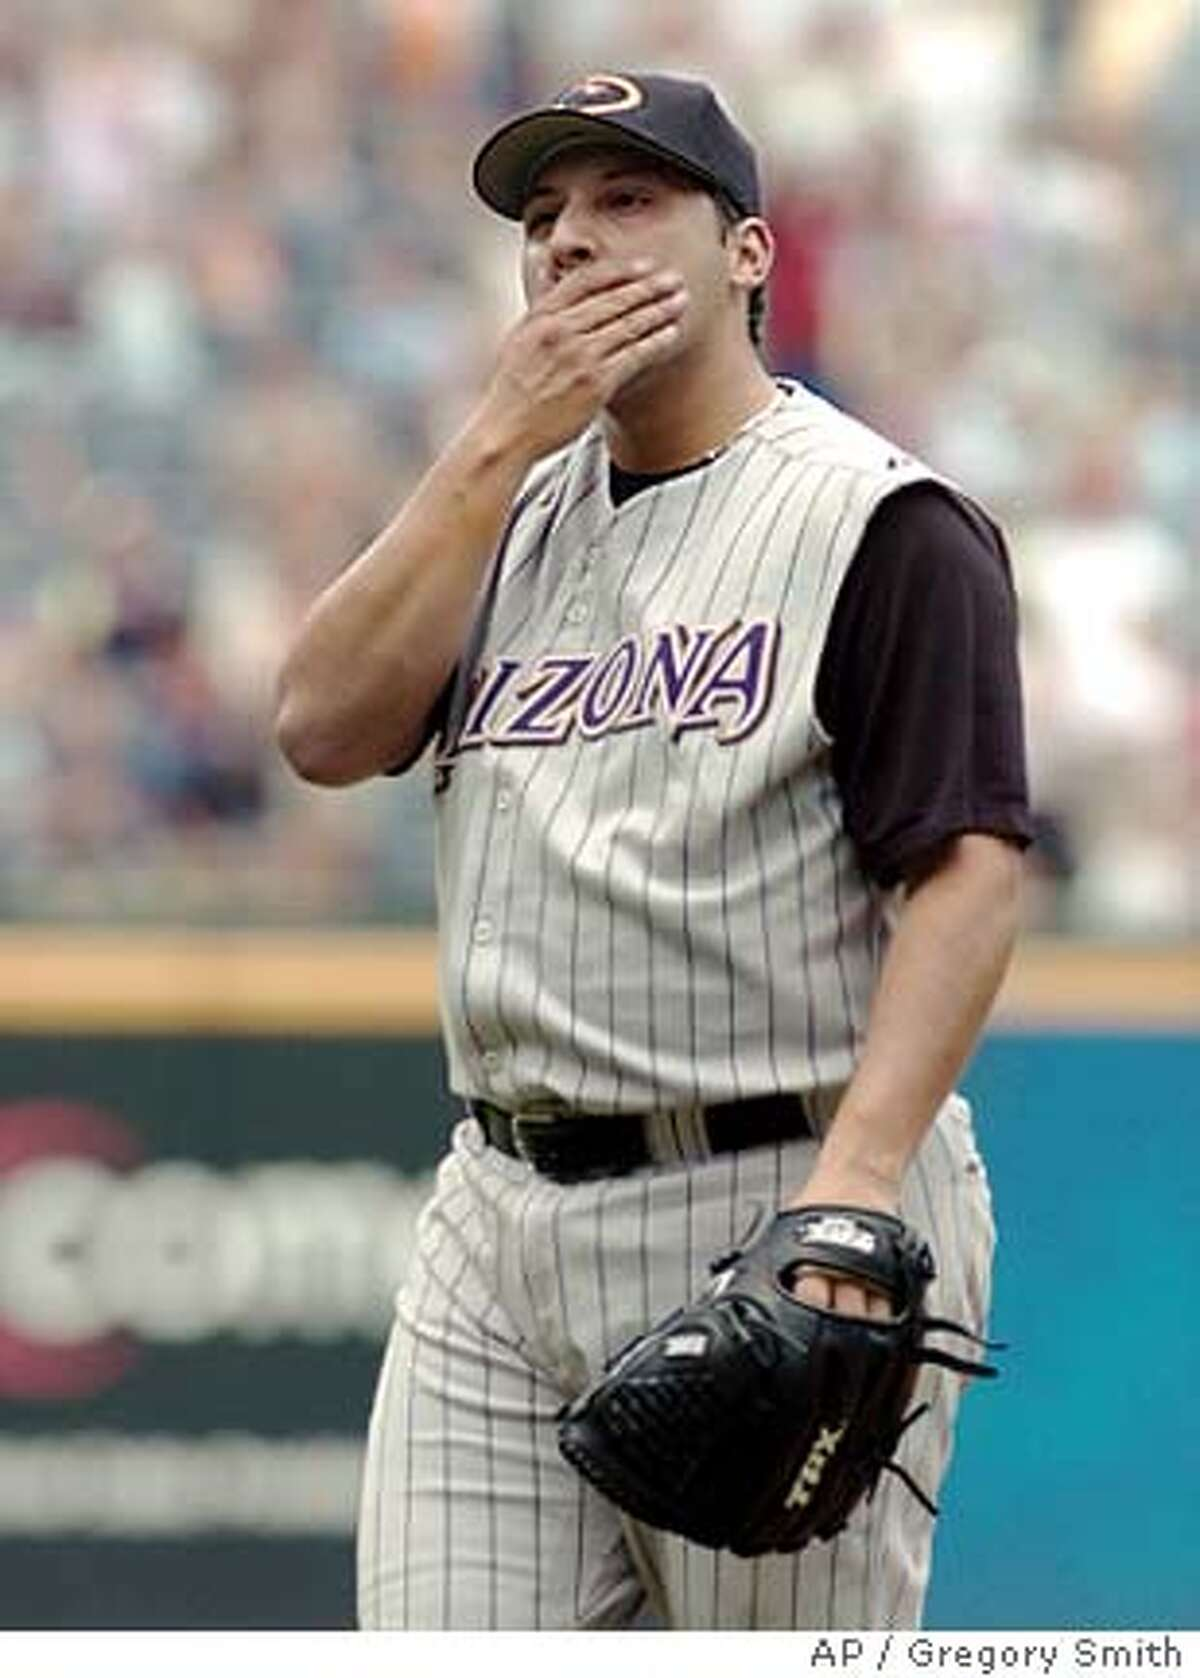 Arizona Diamondbacks starter Russ Ortiz covers his mouth after giving up a three-run home run to Atlanta Braves' Julio Franco during the third inning Saturday, Aug. 13, 2005, in Atlanta. The Braves won 9-5. (AP Photo/Gregory Smith) Ran on: 08-14-2005 Russ Ortiz seems a bit surprised after giving up a three-run home run to 46-year-old Julio Franco. Ran on: 01-10-2007 Russ Ortiz will compete for the fifth spot in the Giants rotation.